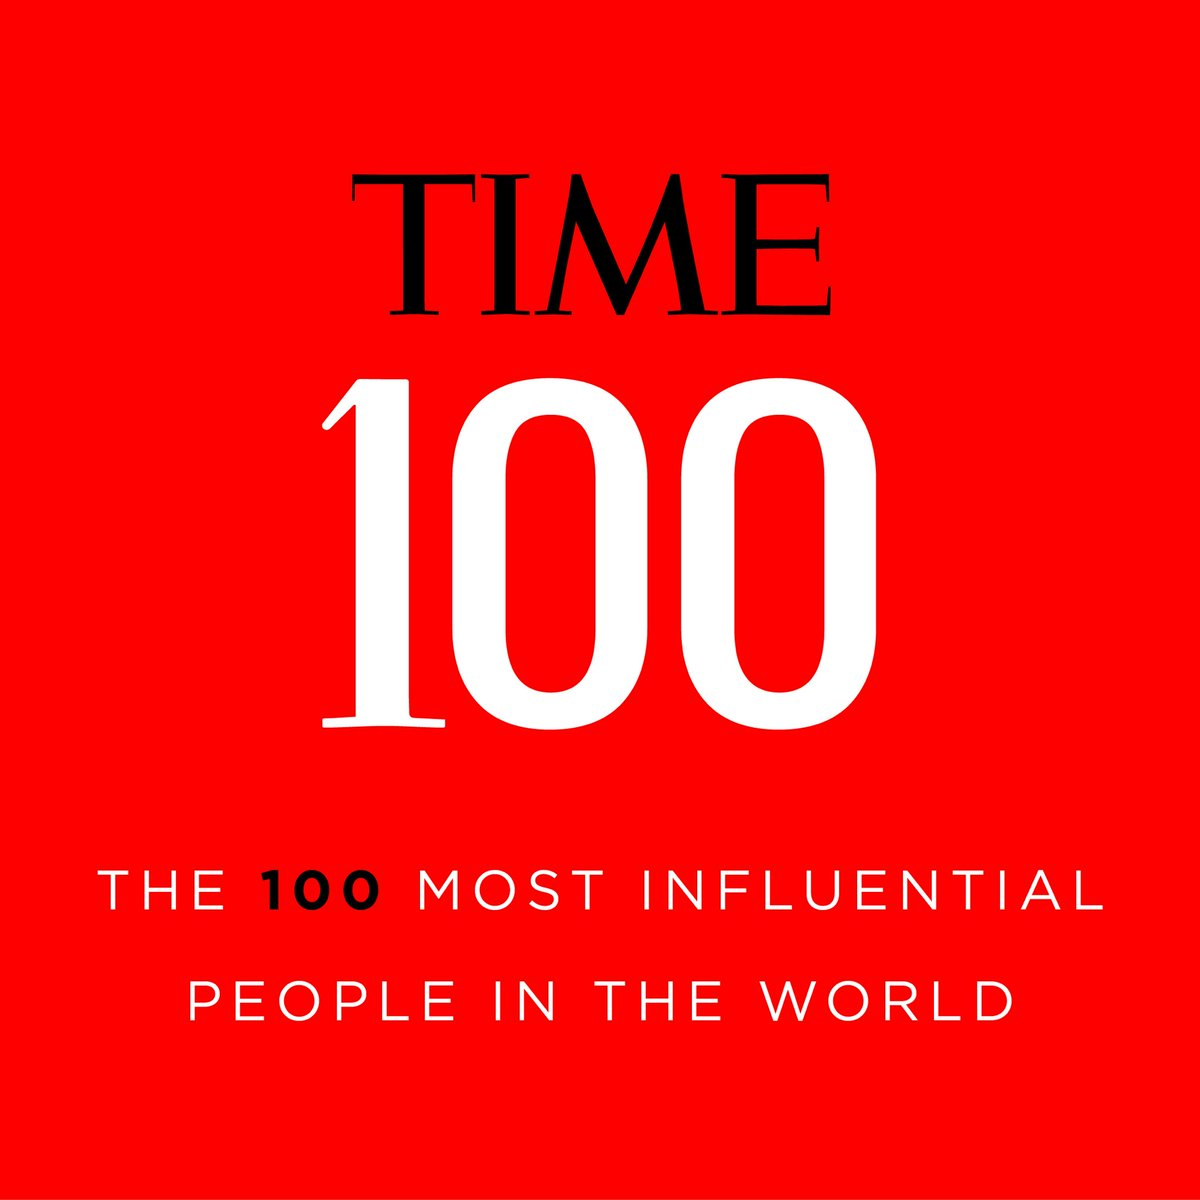 Proud to be included in the 2020 #TIME100 list. See the full list here:https://t.co/eJ6Am9iZAe https://t.co/6zQbR2taJZ